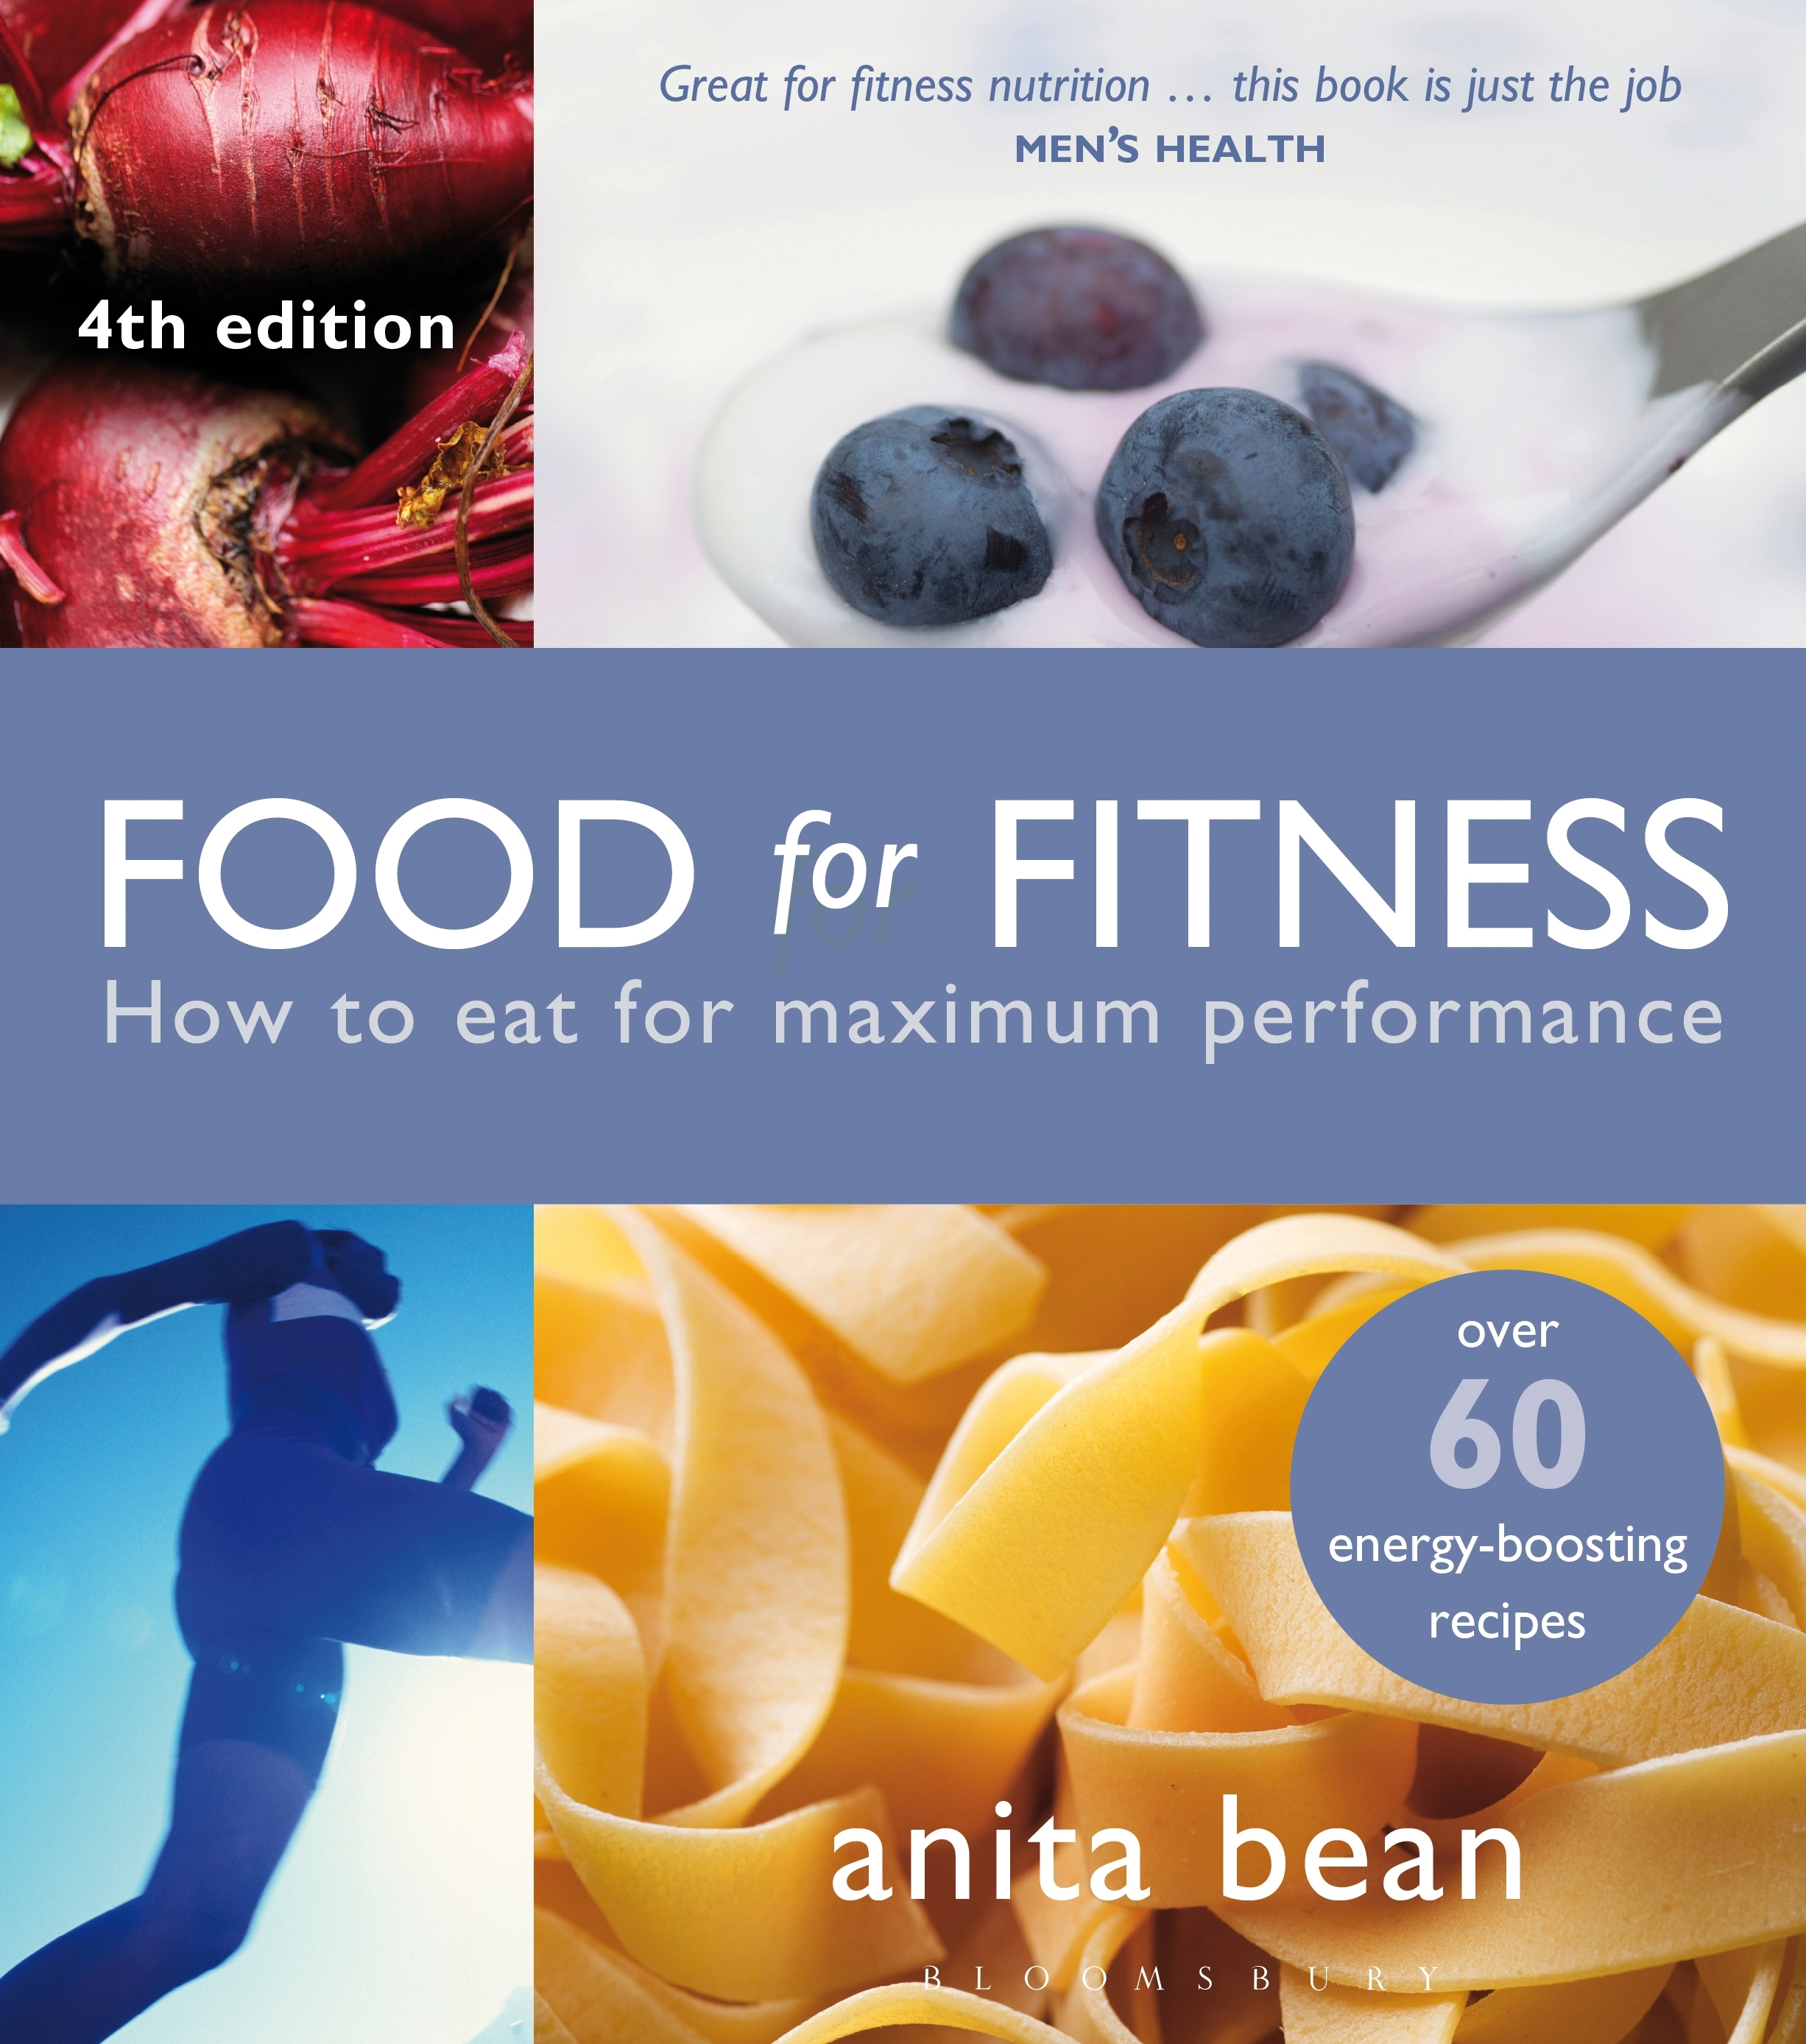 anita bean food for fitness